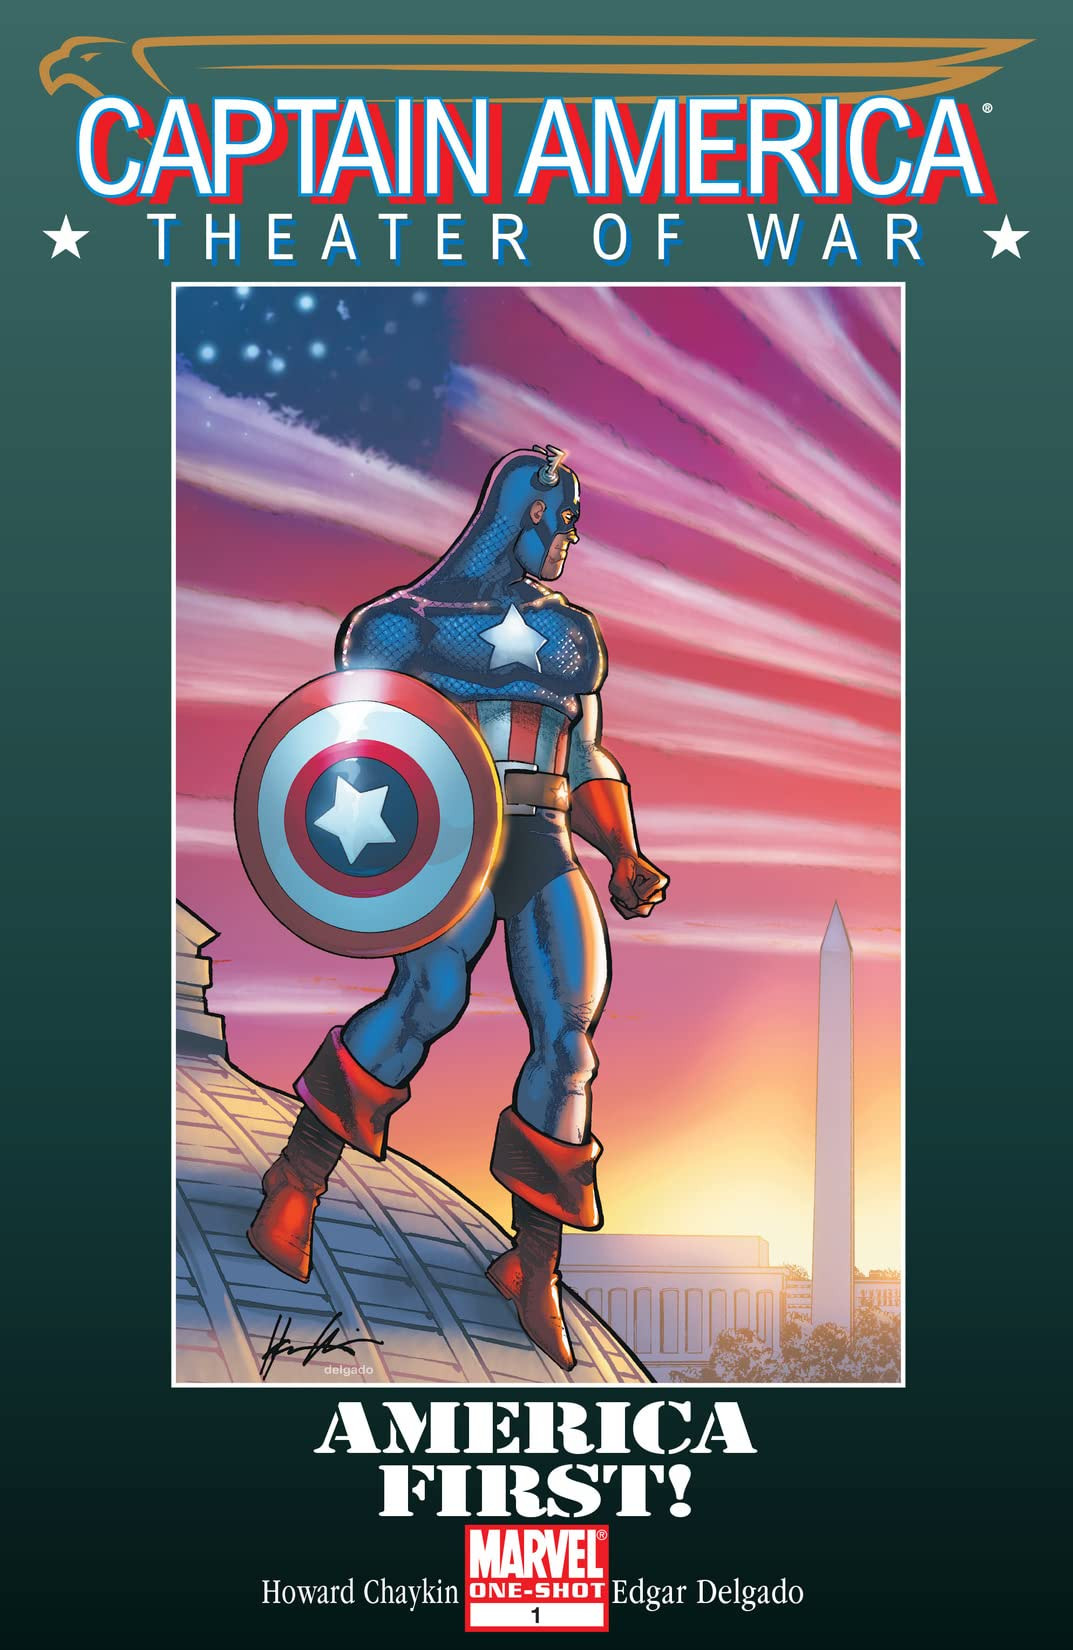 Captain America Theater of War America First! Vol 1 1 Variant